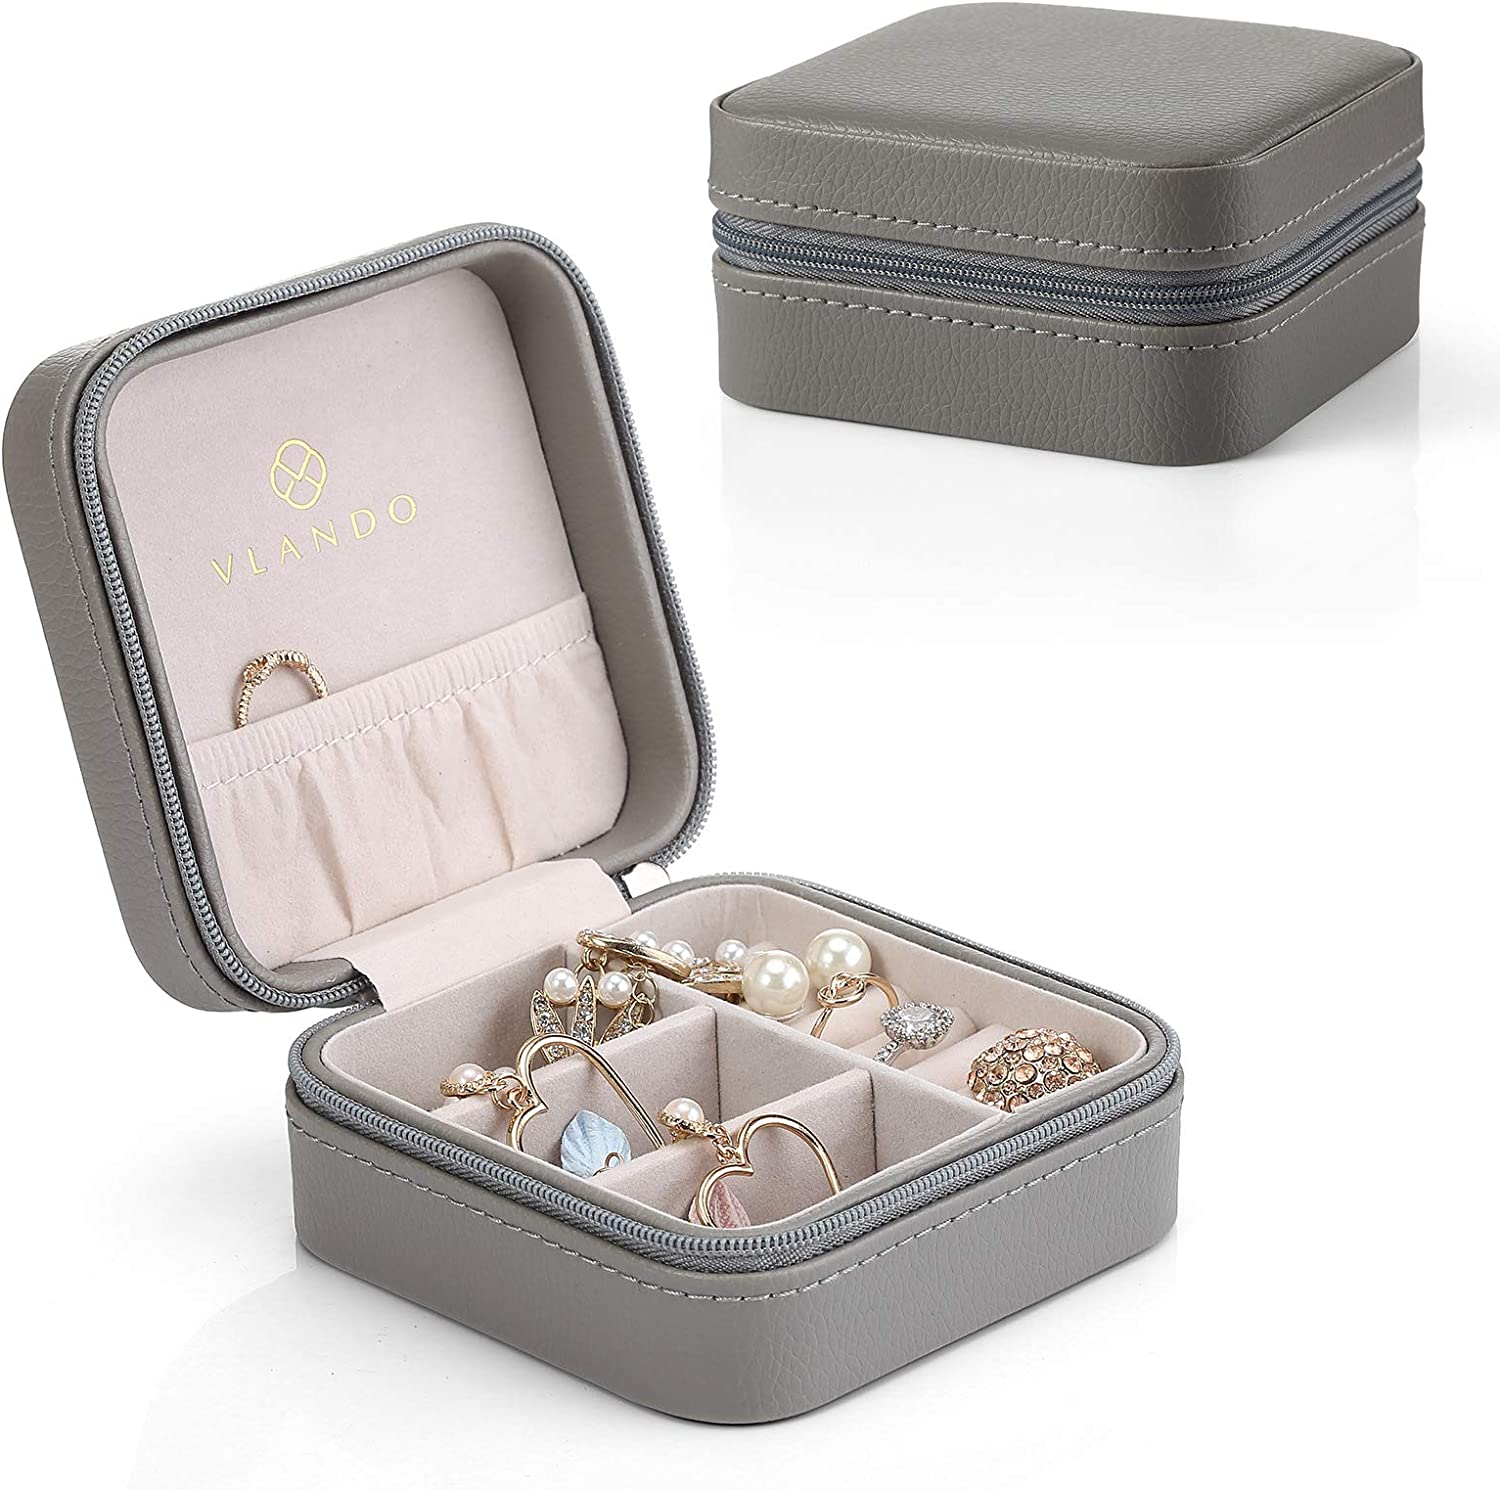 Vlando Travel Jewelry Box Organizer,PU Leather Wooden Small Jewelry Storage Case, Earring, Ring, Necklaces -Best Gifts for Girls Women Ladies (Grey)